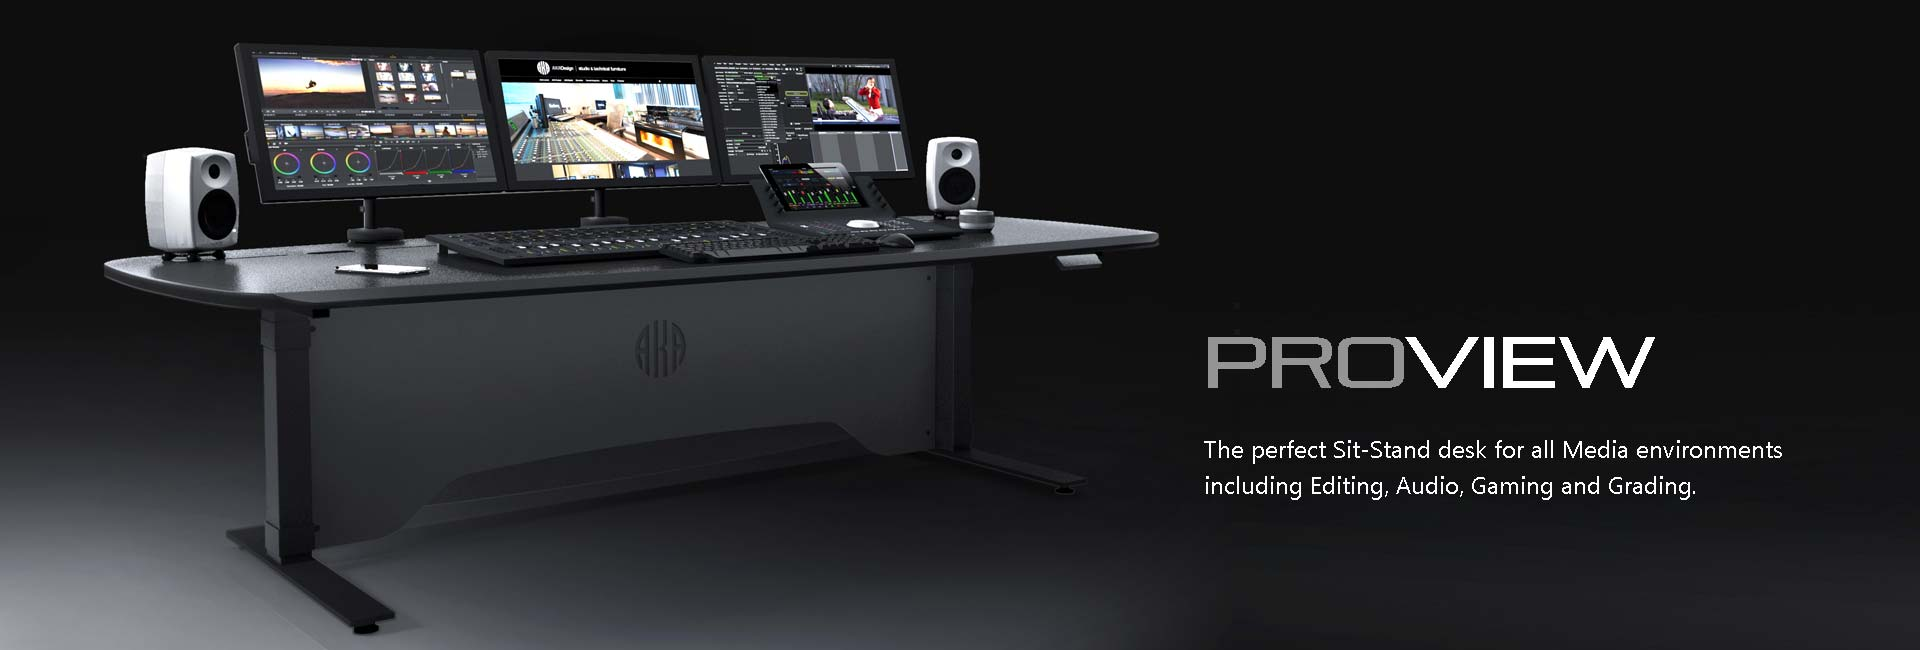 ProView-sit-stand-desk